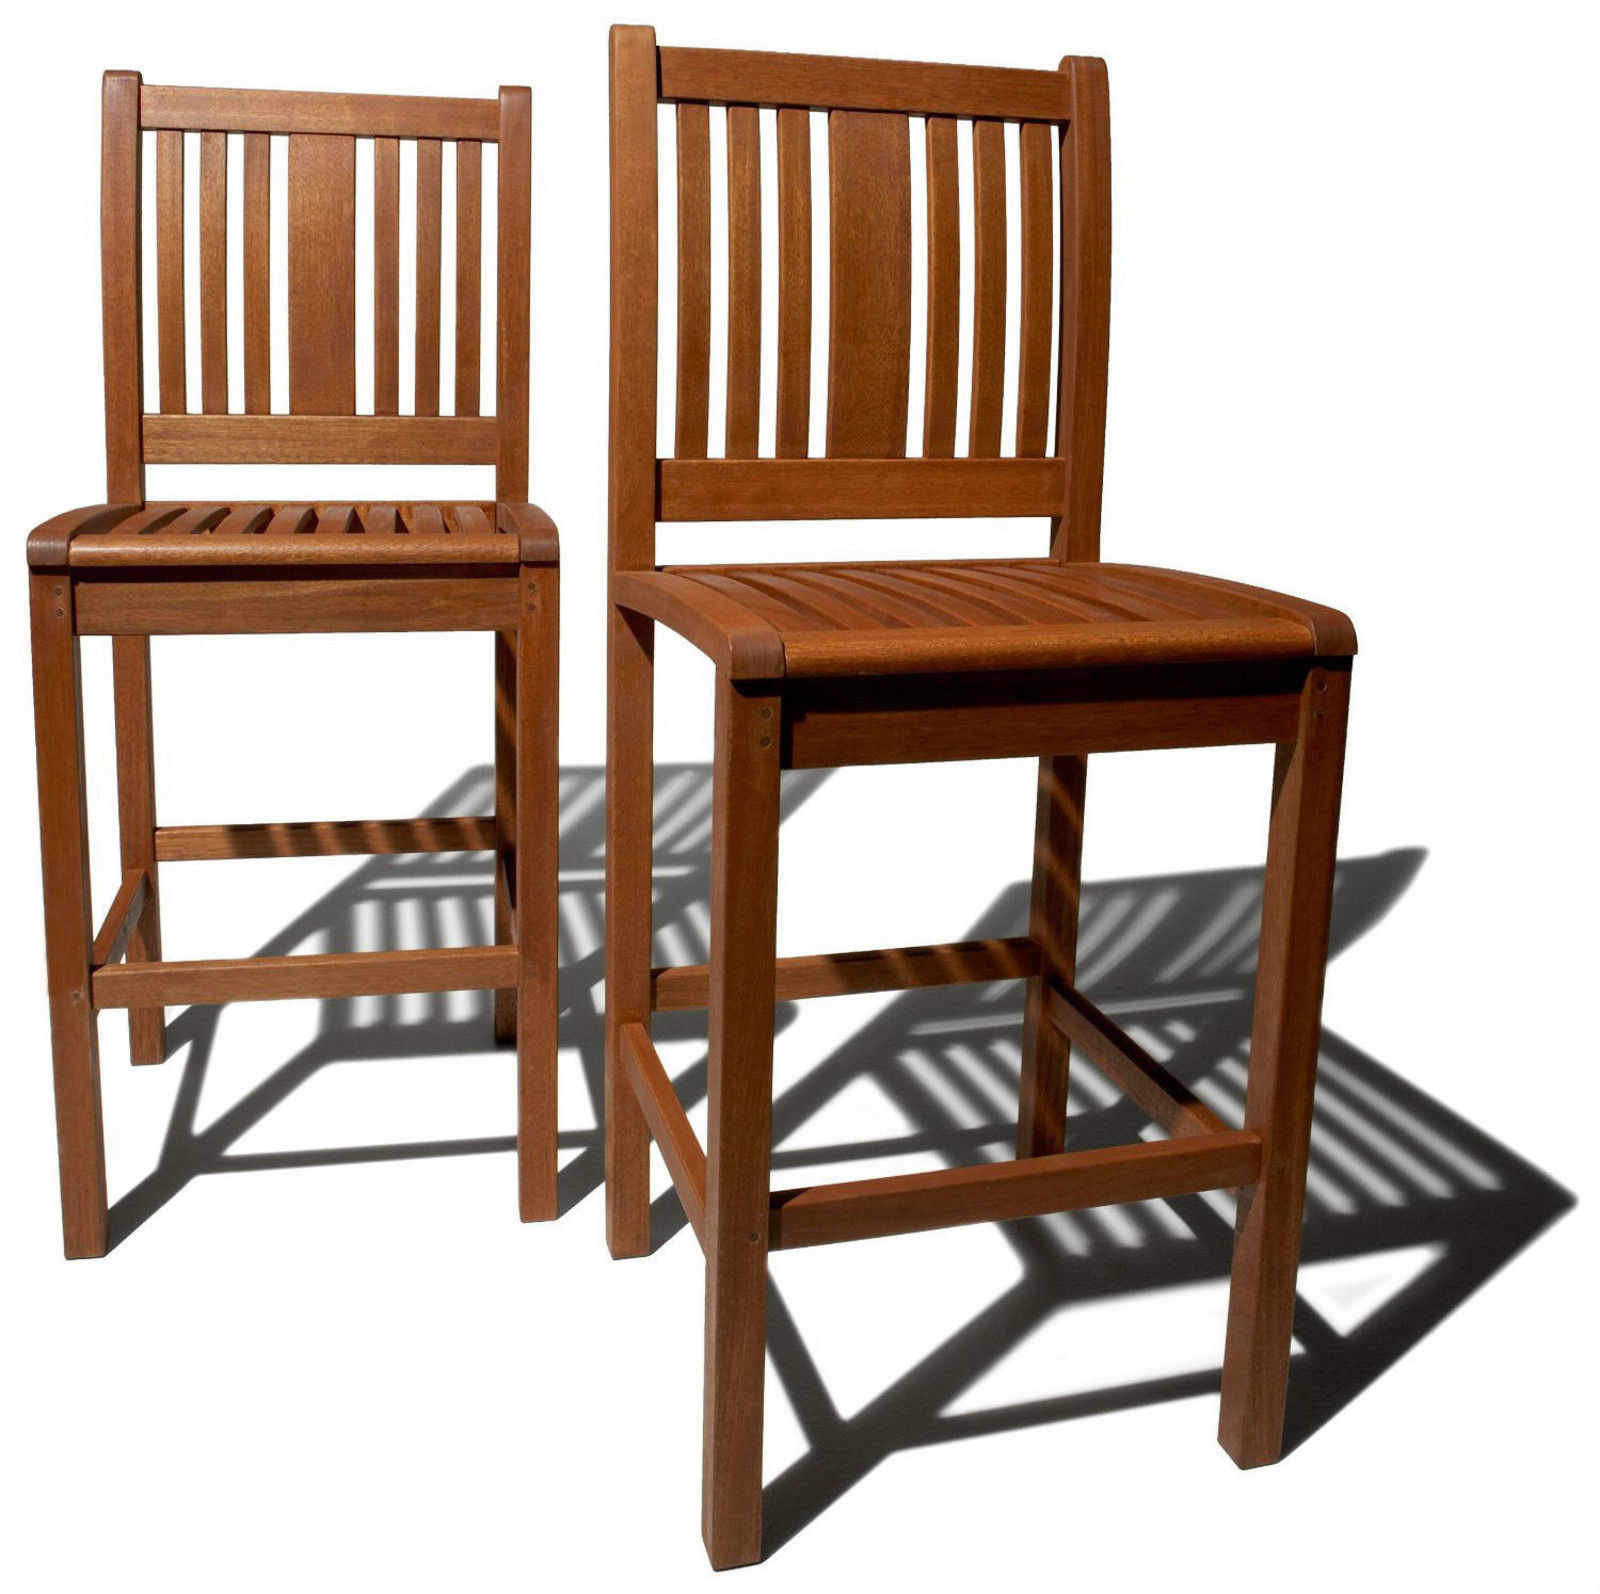 Superb img of Wood Bar Chairs Patio Set Tall Deck Yard Pool Outdoor Pub Dining  with #793F1B color and 1600x1594 pixels